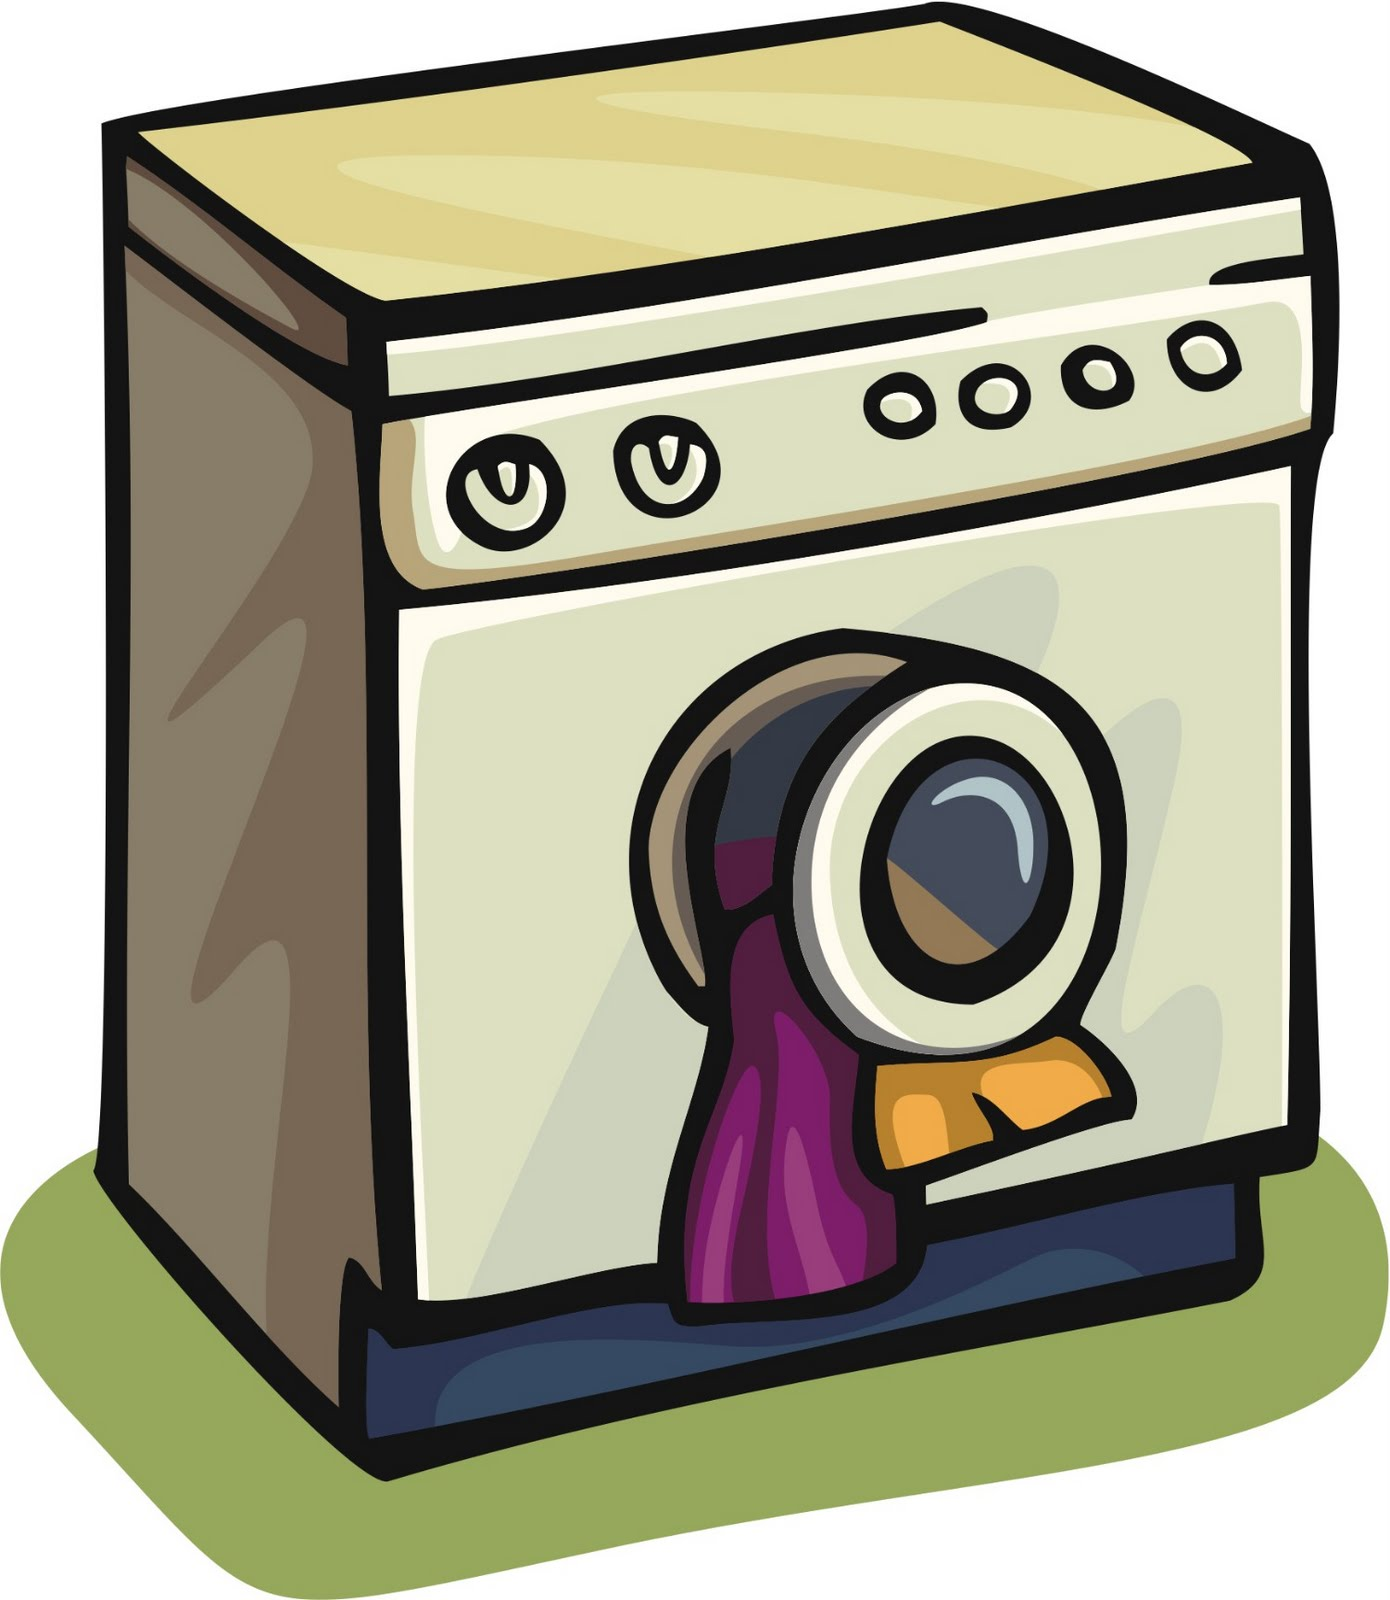 pin washing machine and laundry icons stock on